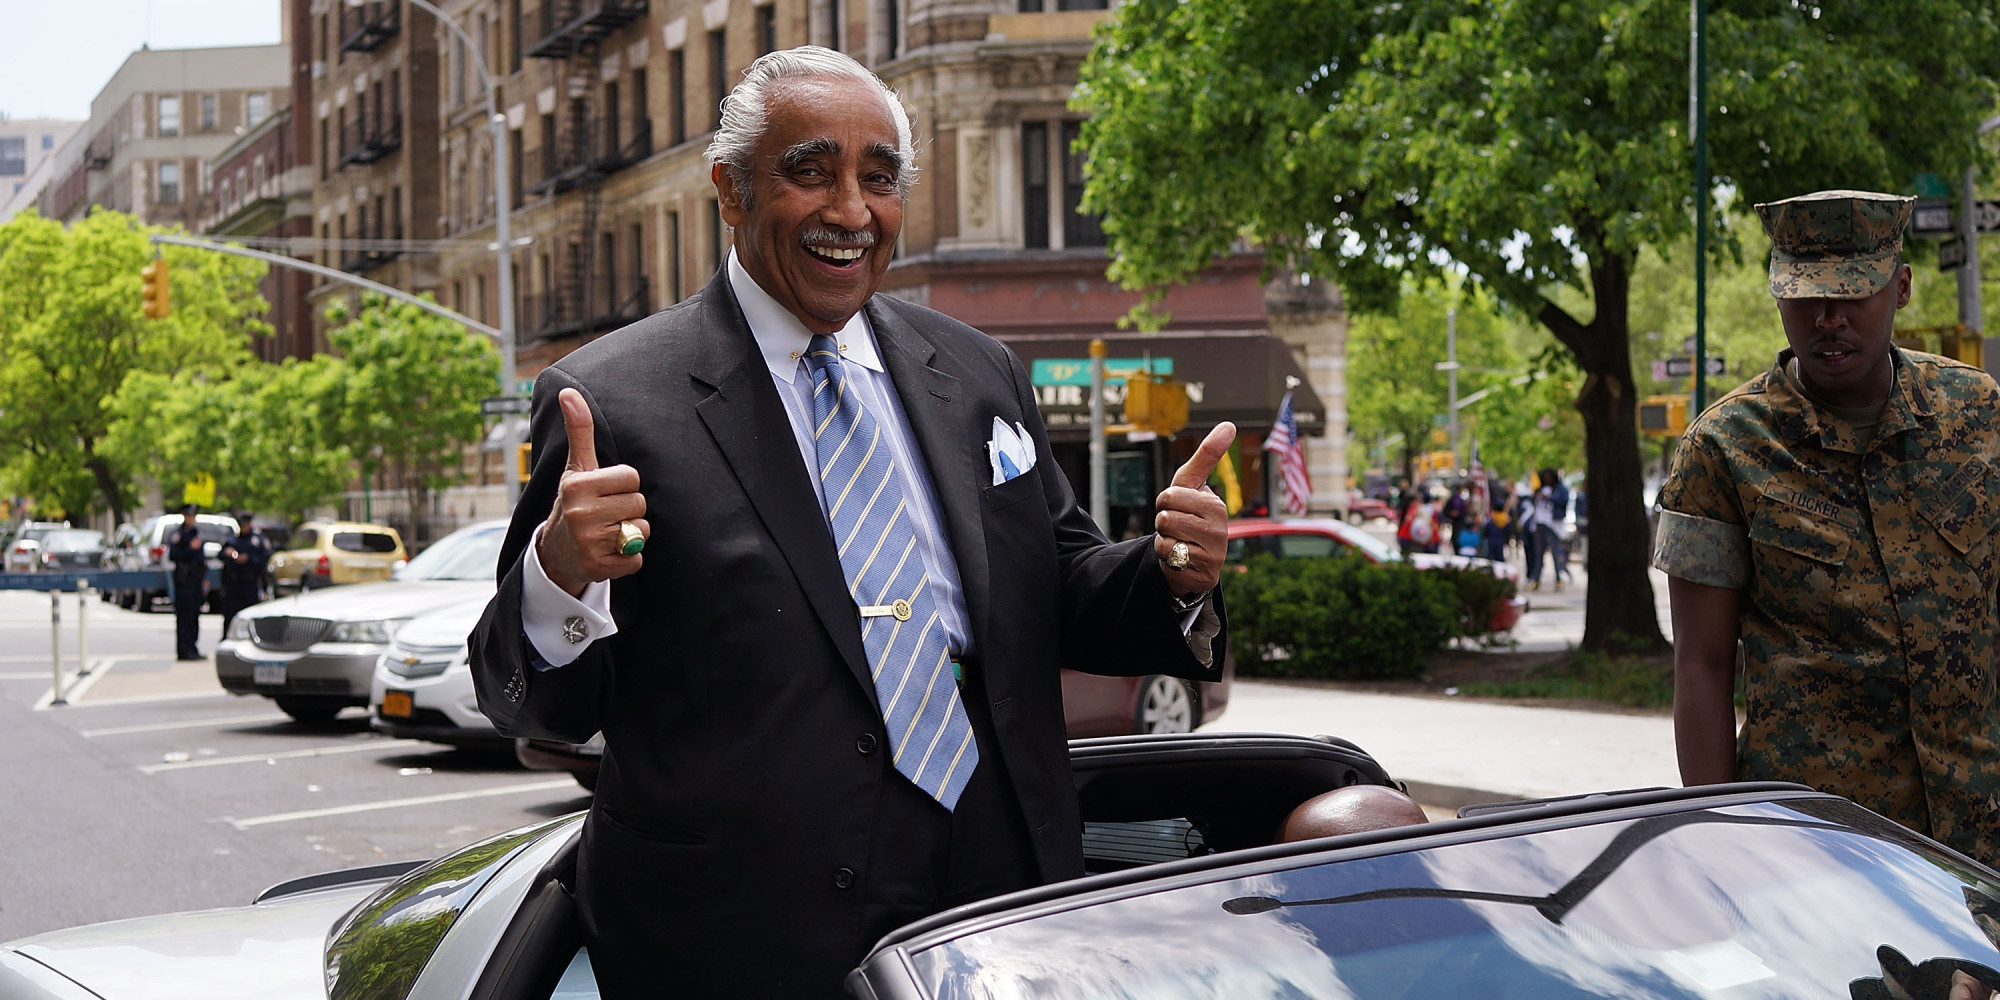 Rangel: Democrats try to make progress in West Texas